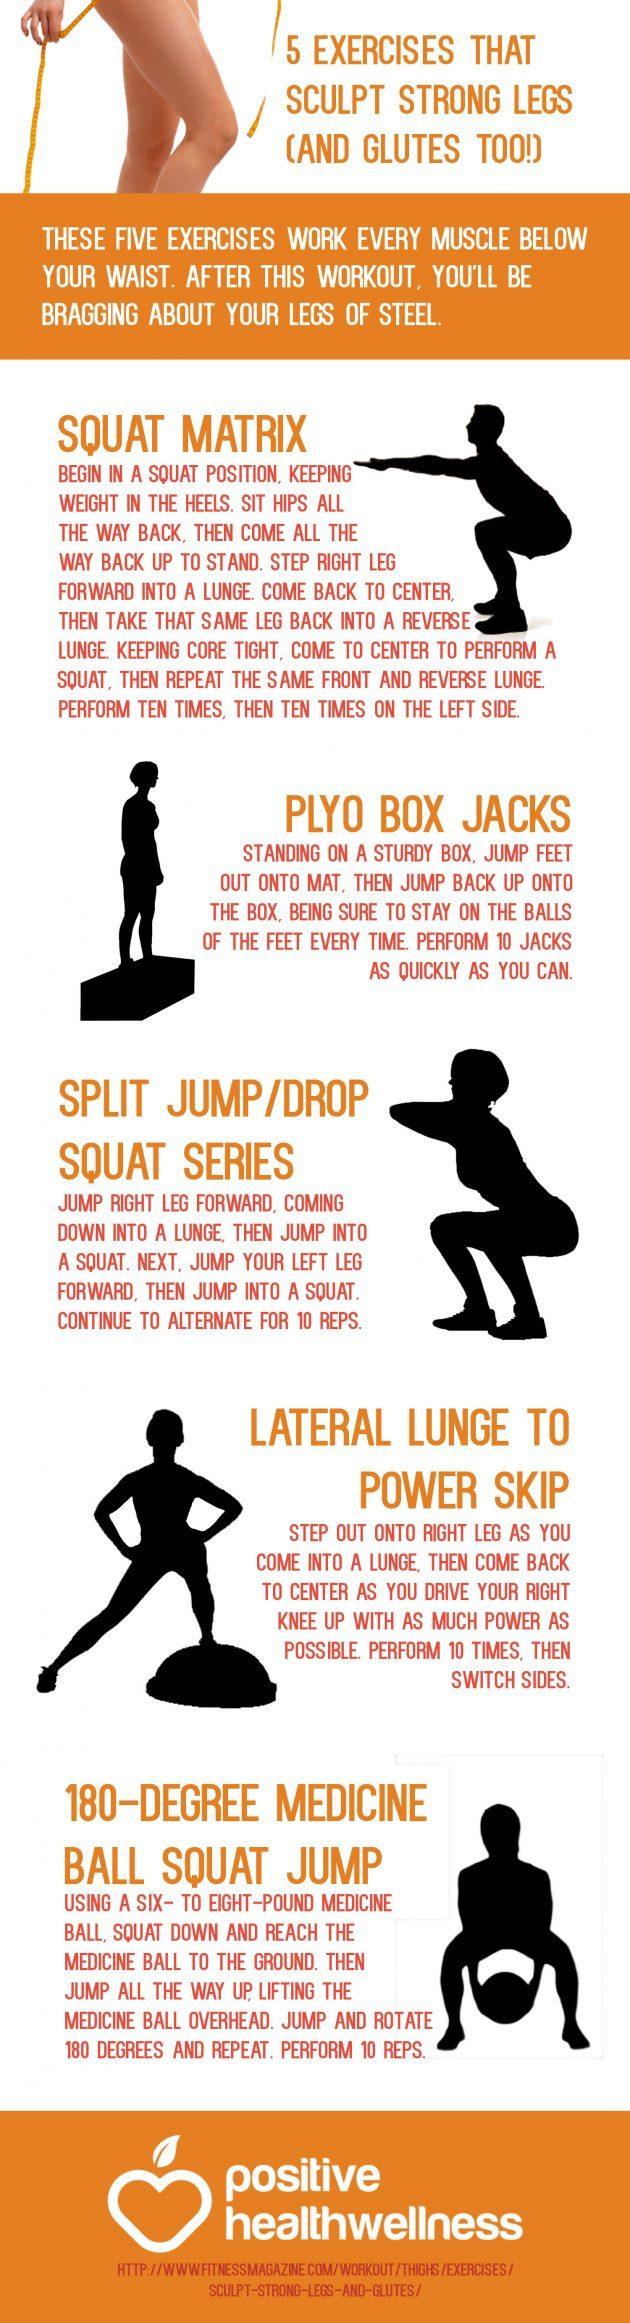 5 Exercises That Sculpt Strong Legs (and Glutes Too!)